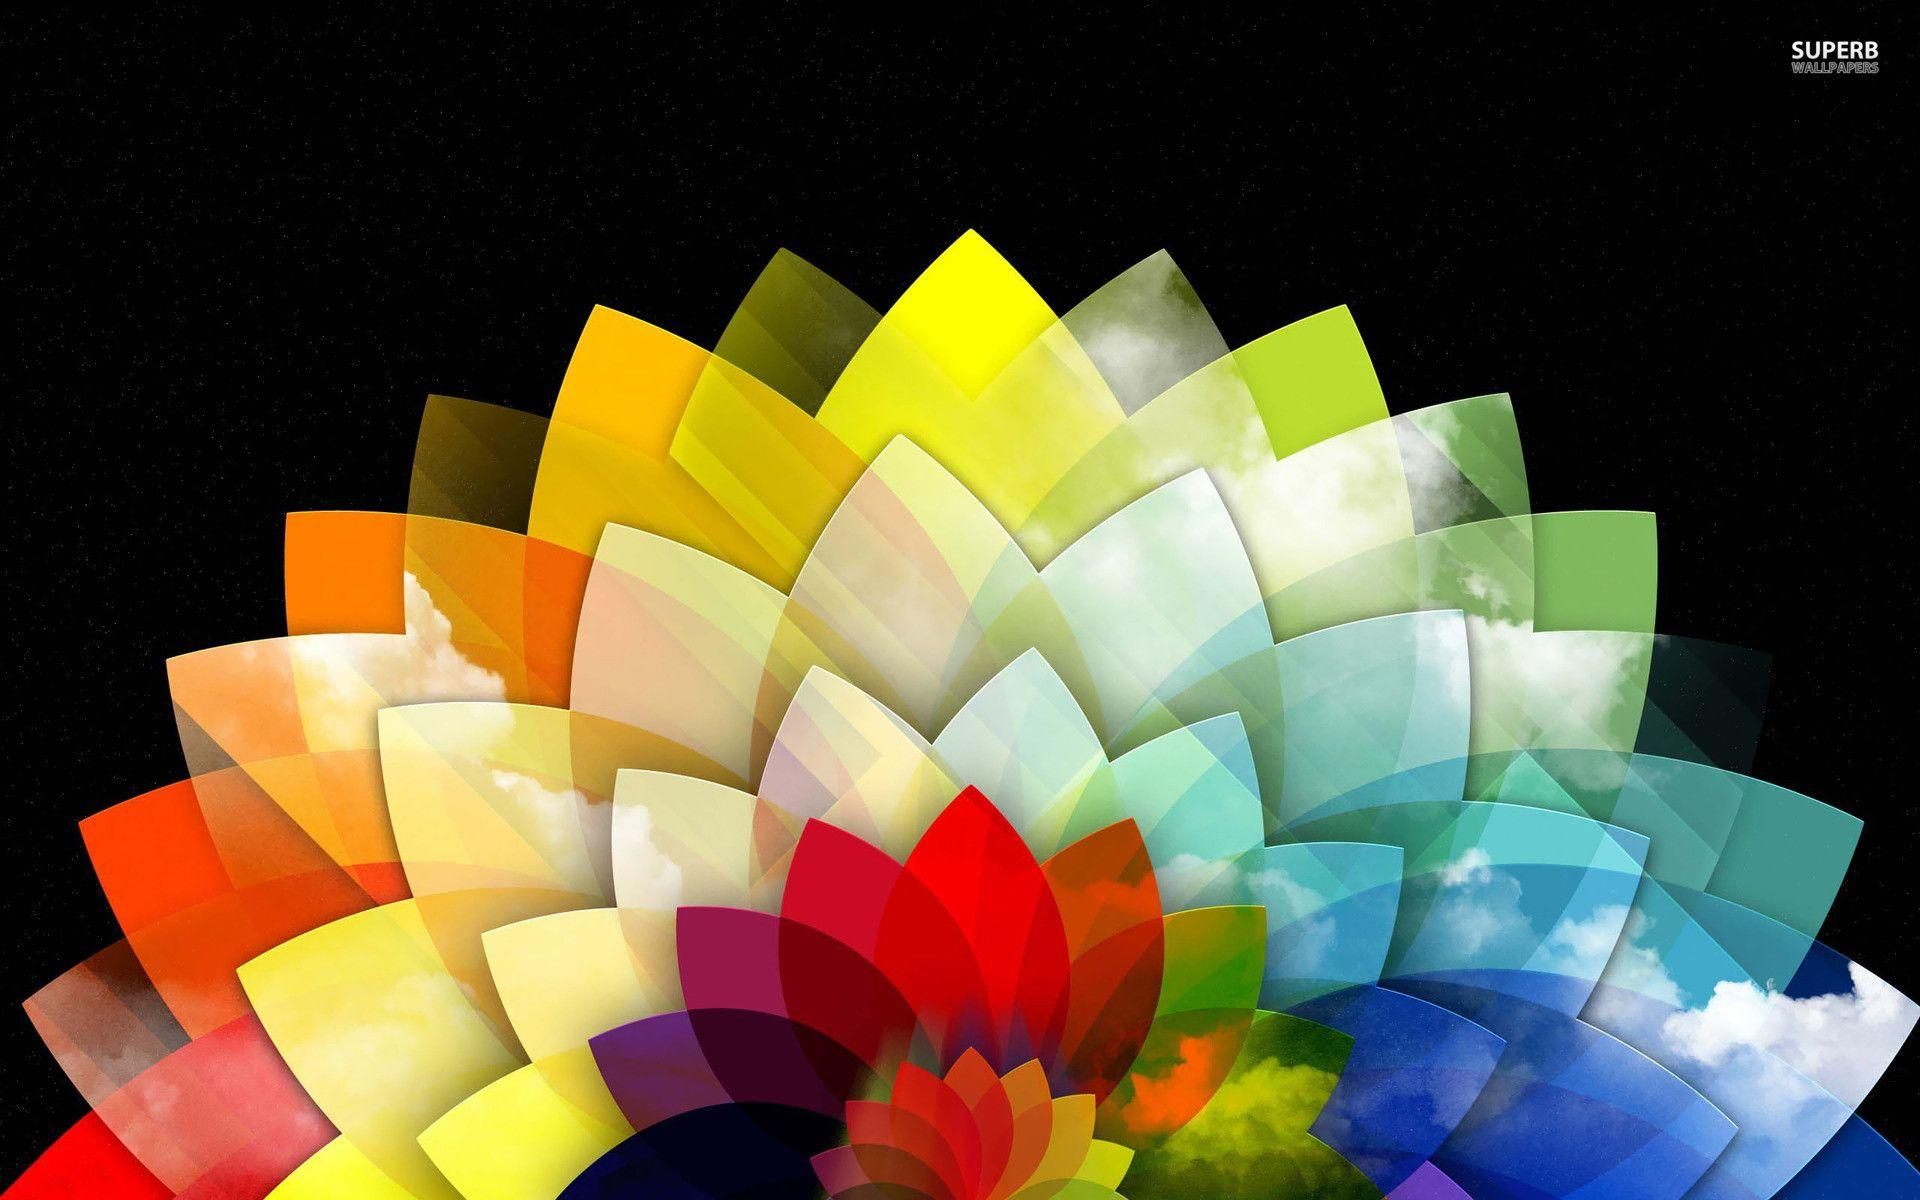 Free Colorful Flower Desktop Wallpaper: Colorful Flower Wallpapers